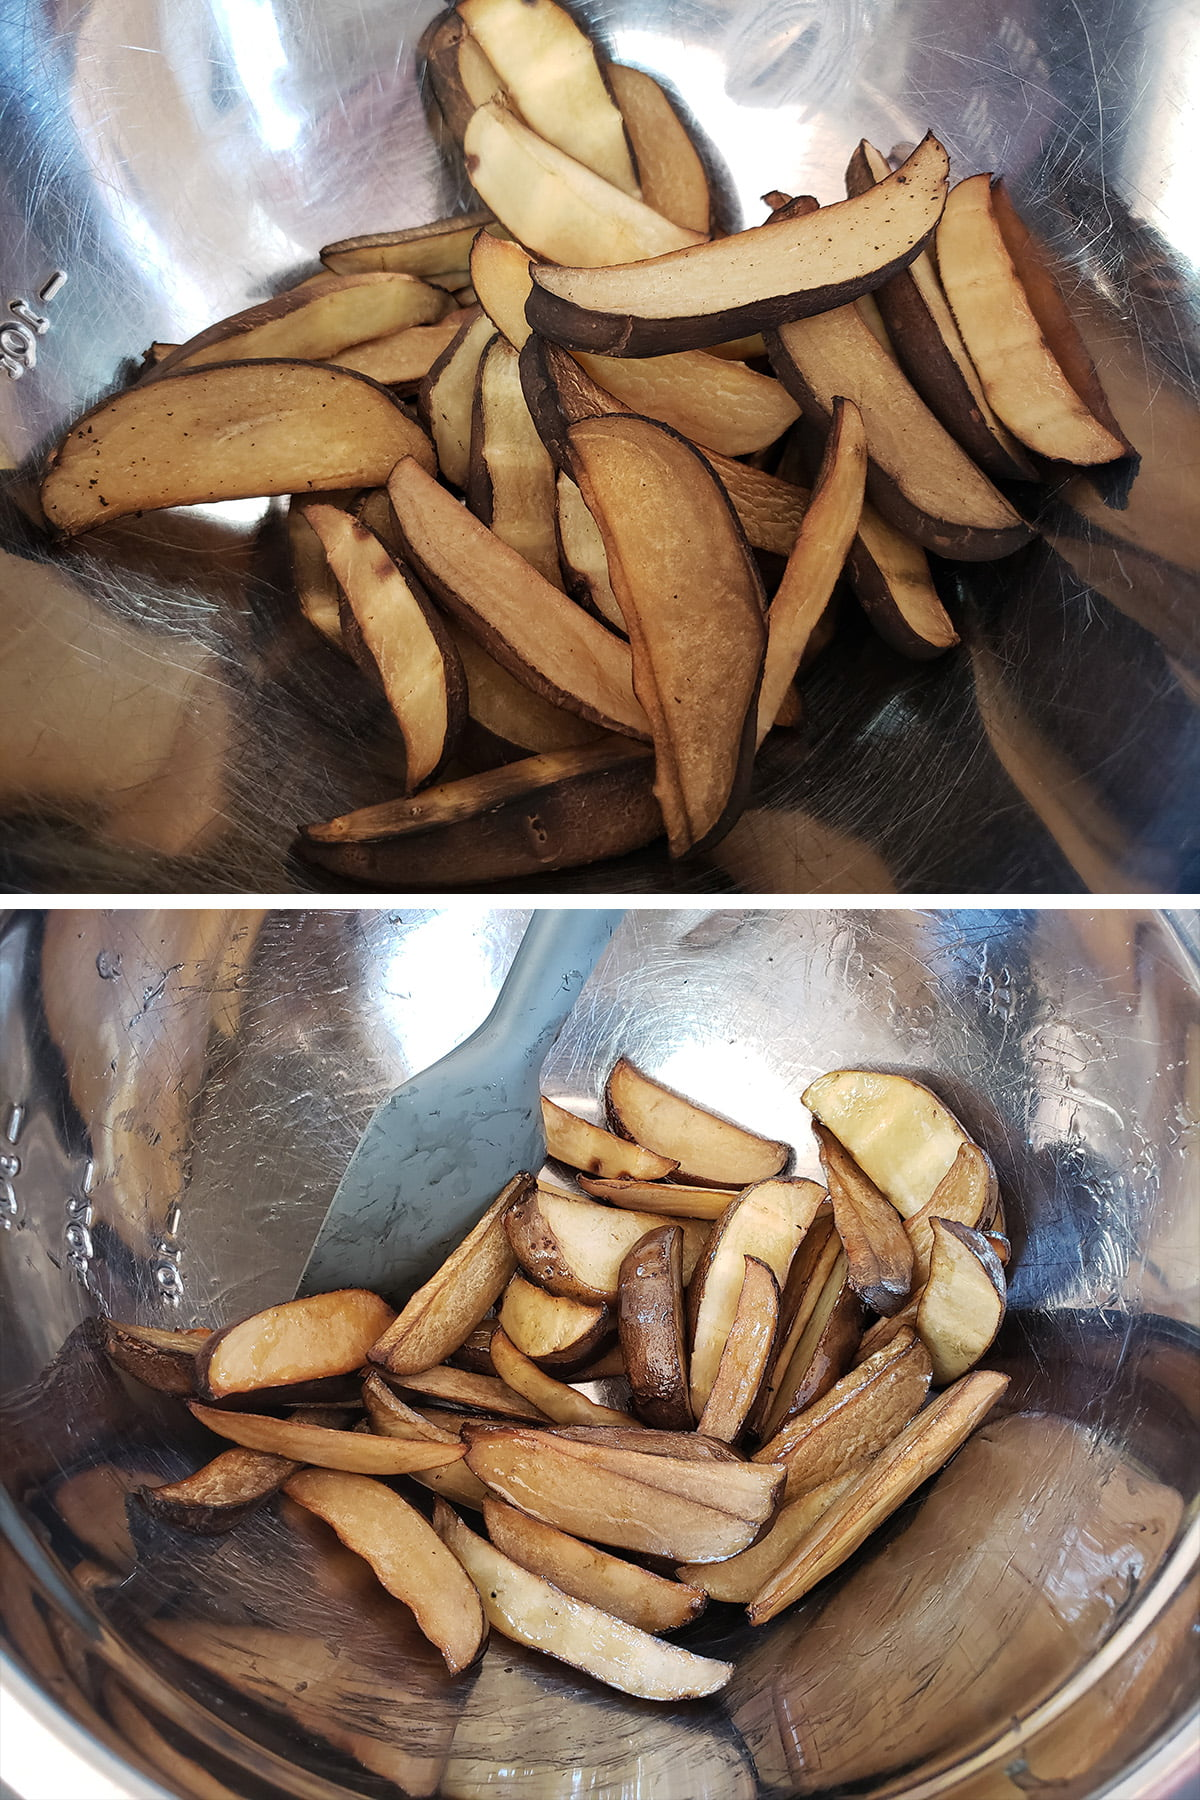 A two part compilation image showing smoked potato wedges, before and after being tossed with oil.